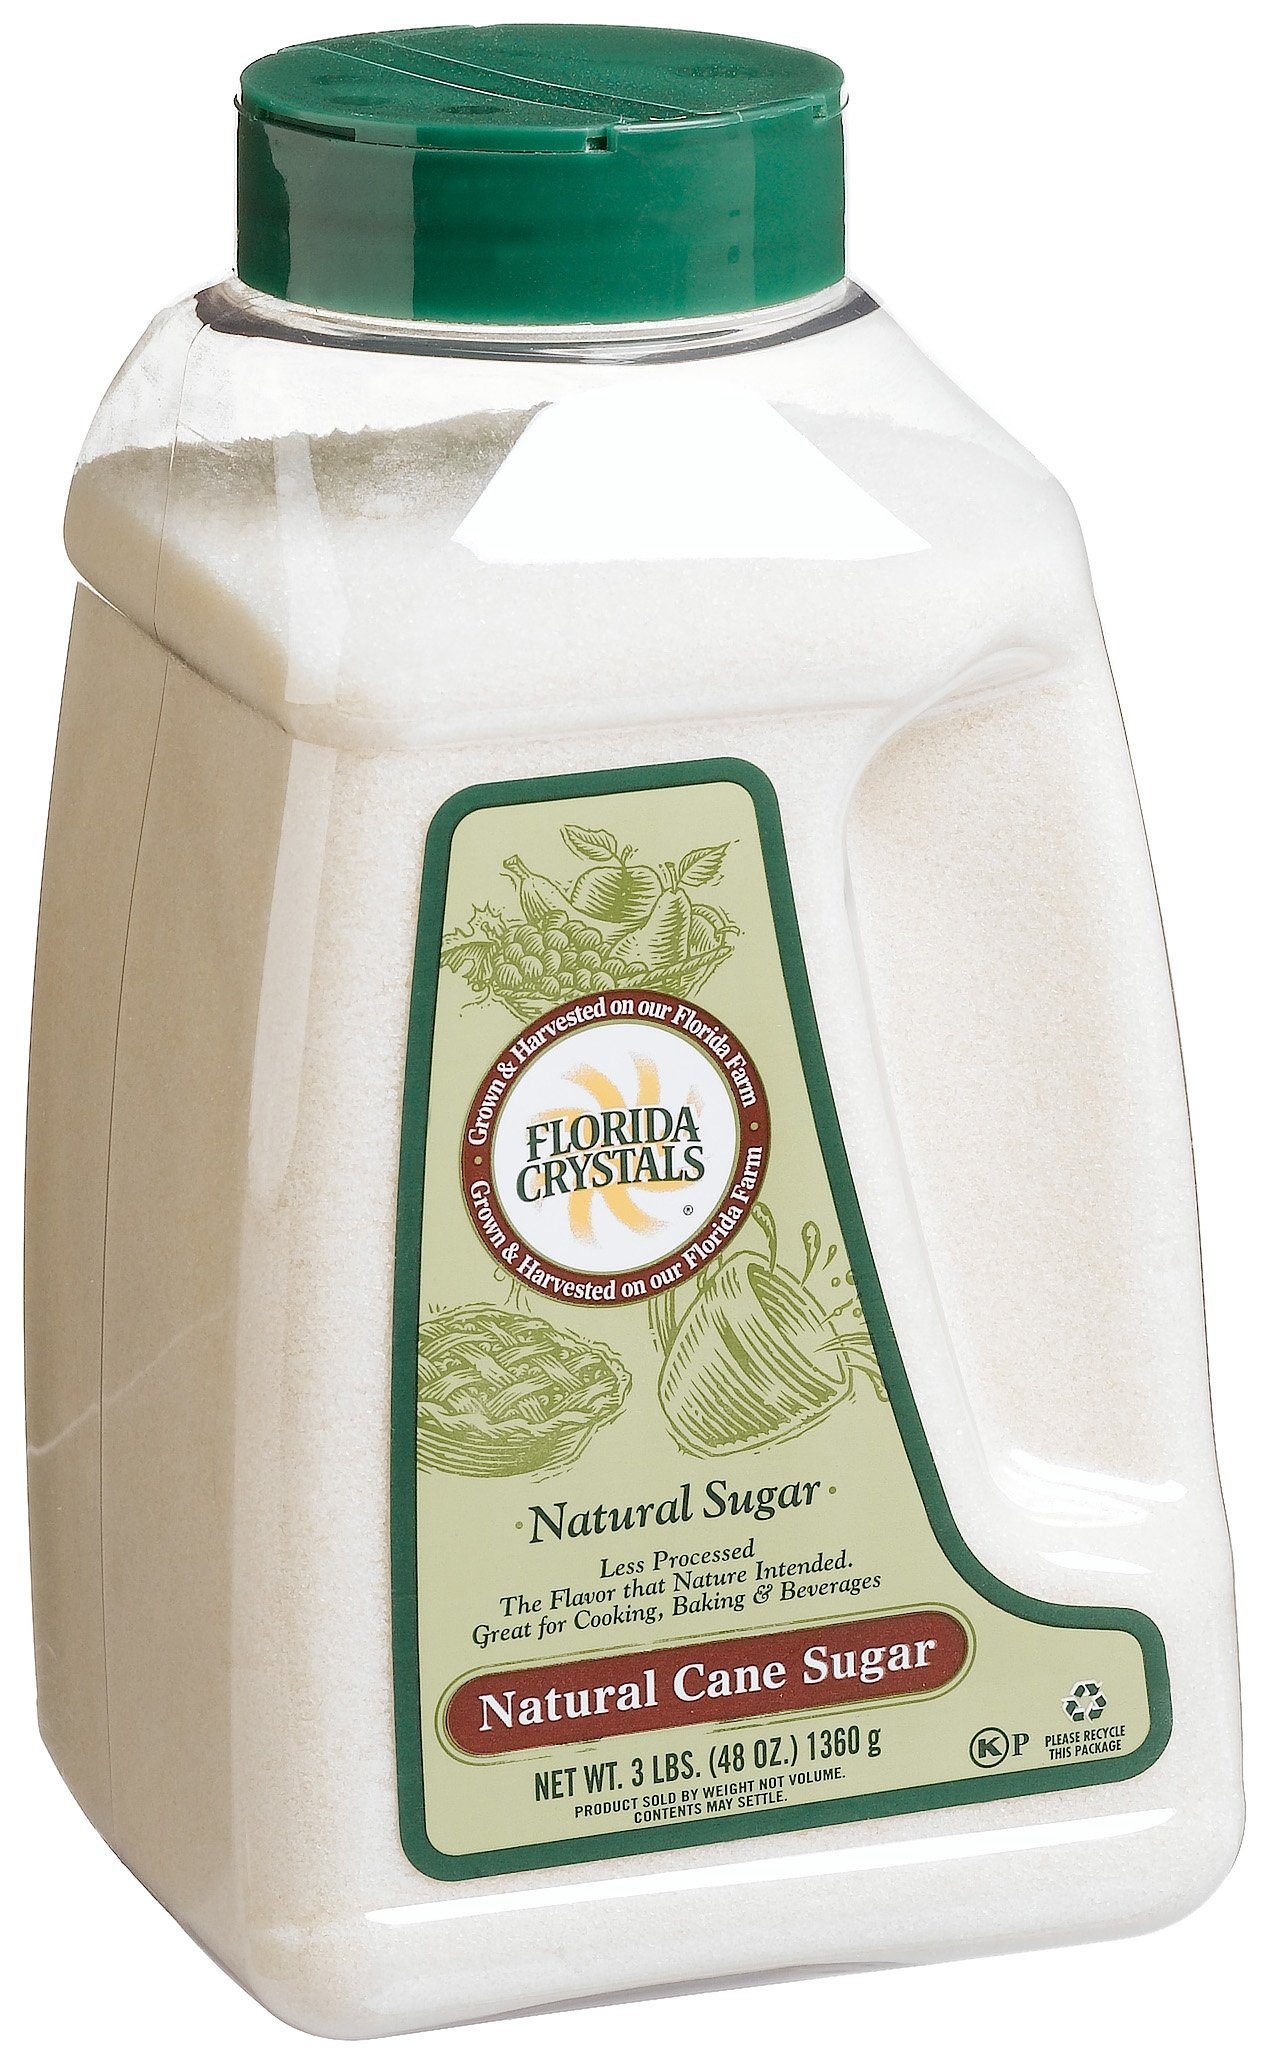 Florida Crystals 33378 Florida Crystals Natural Cane Sugar Jug -1x48 Oz